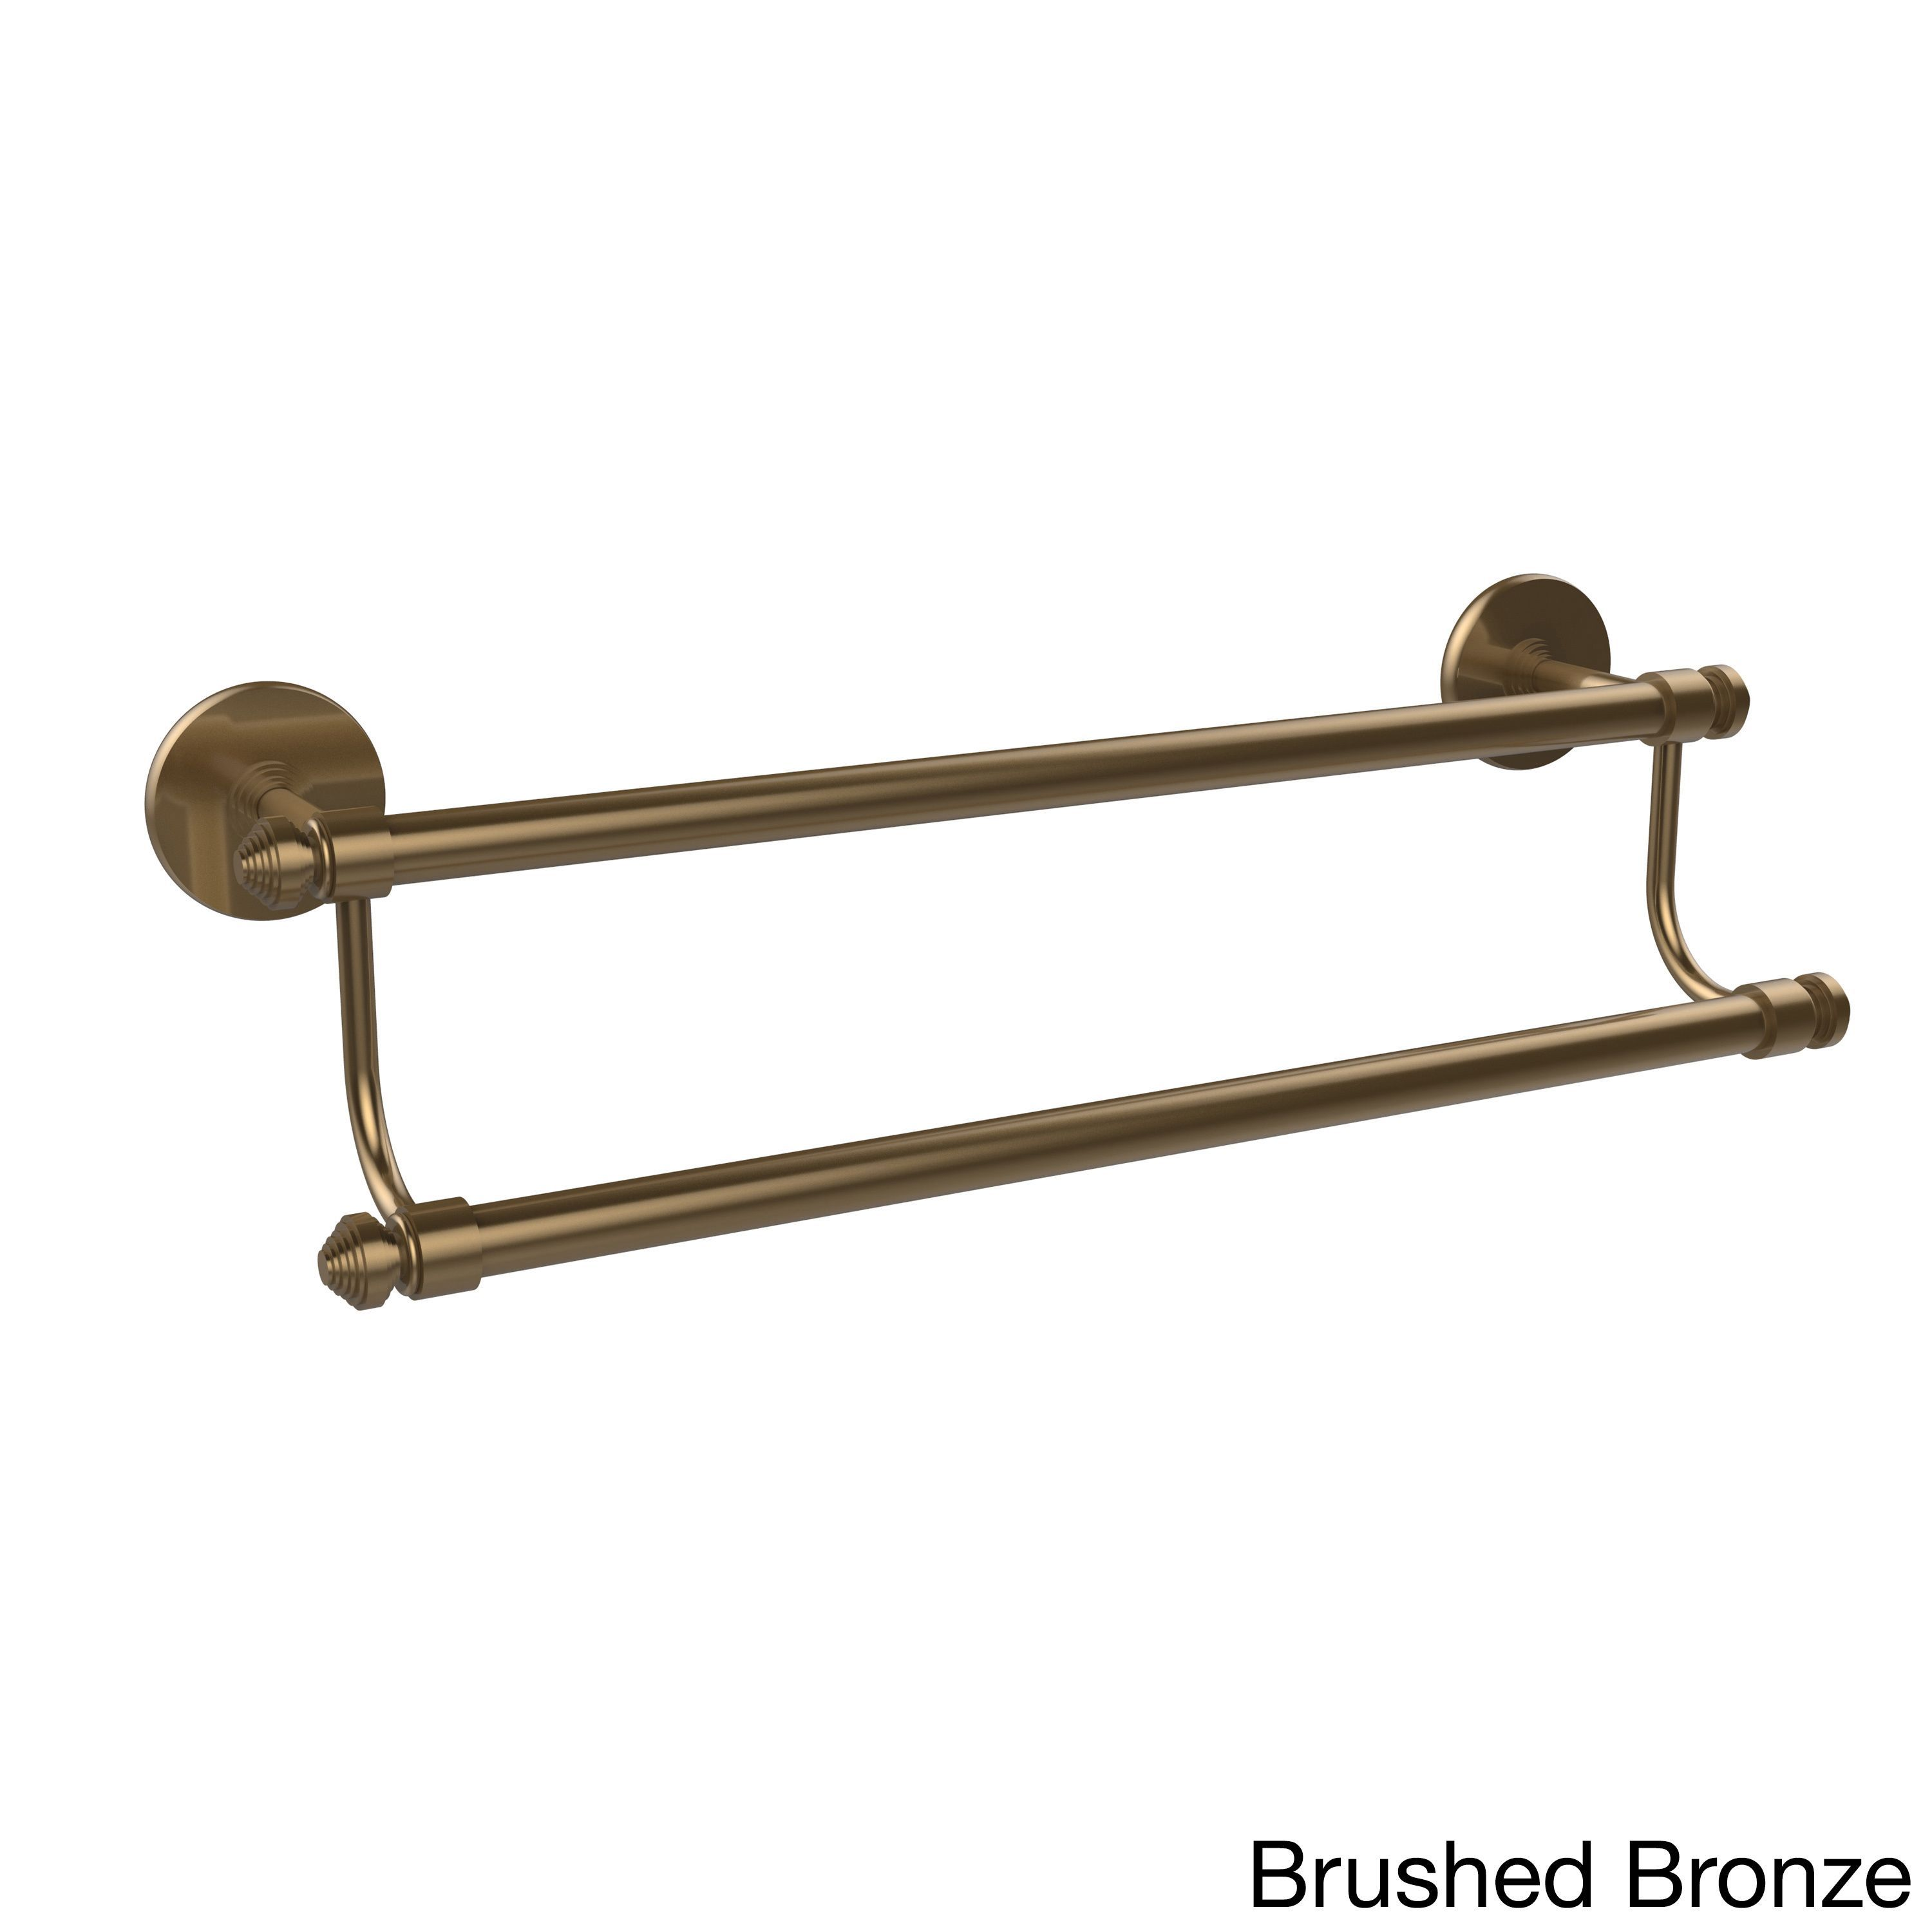 Allied Brass Southbeach Collection 18-inch Double Towel Bar (Brushed Bronze), Clear